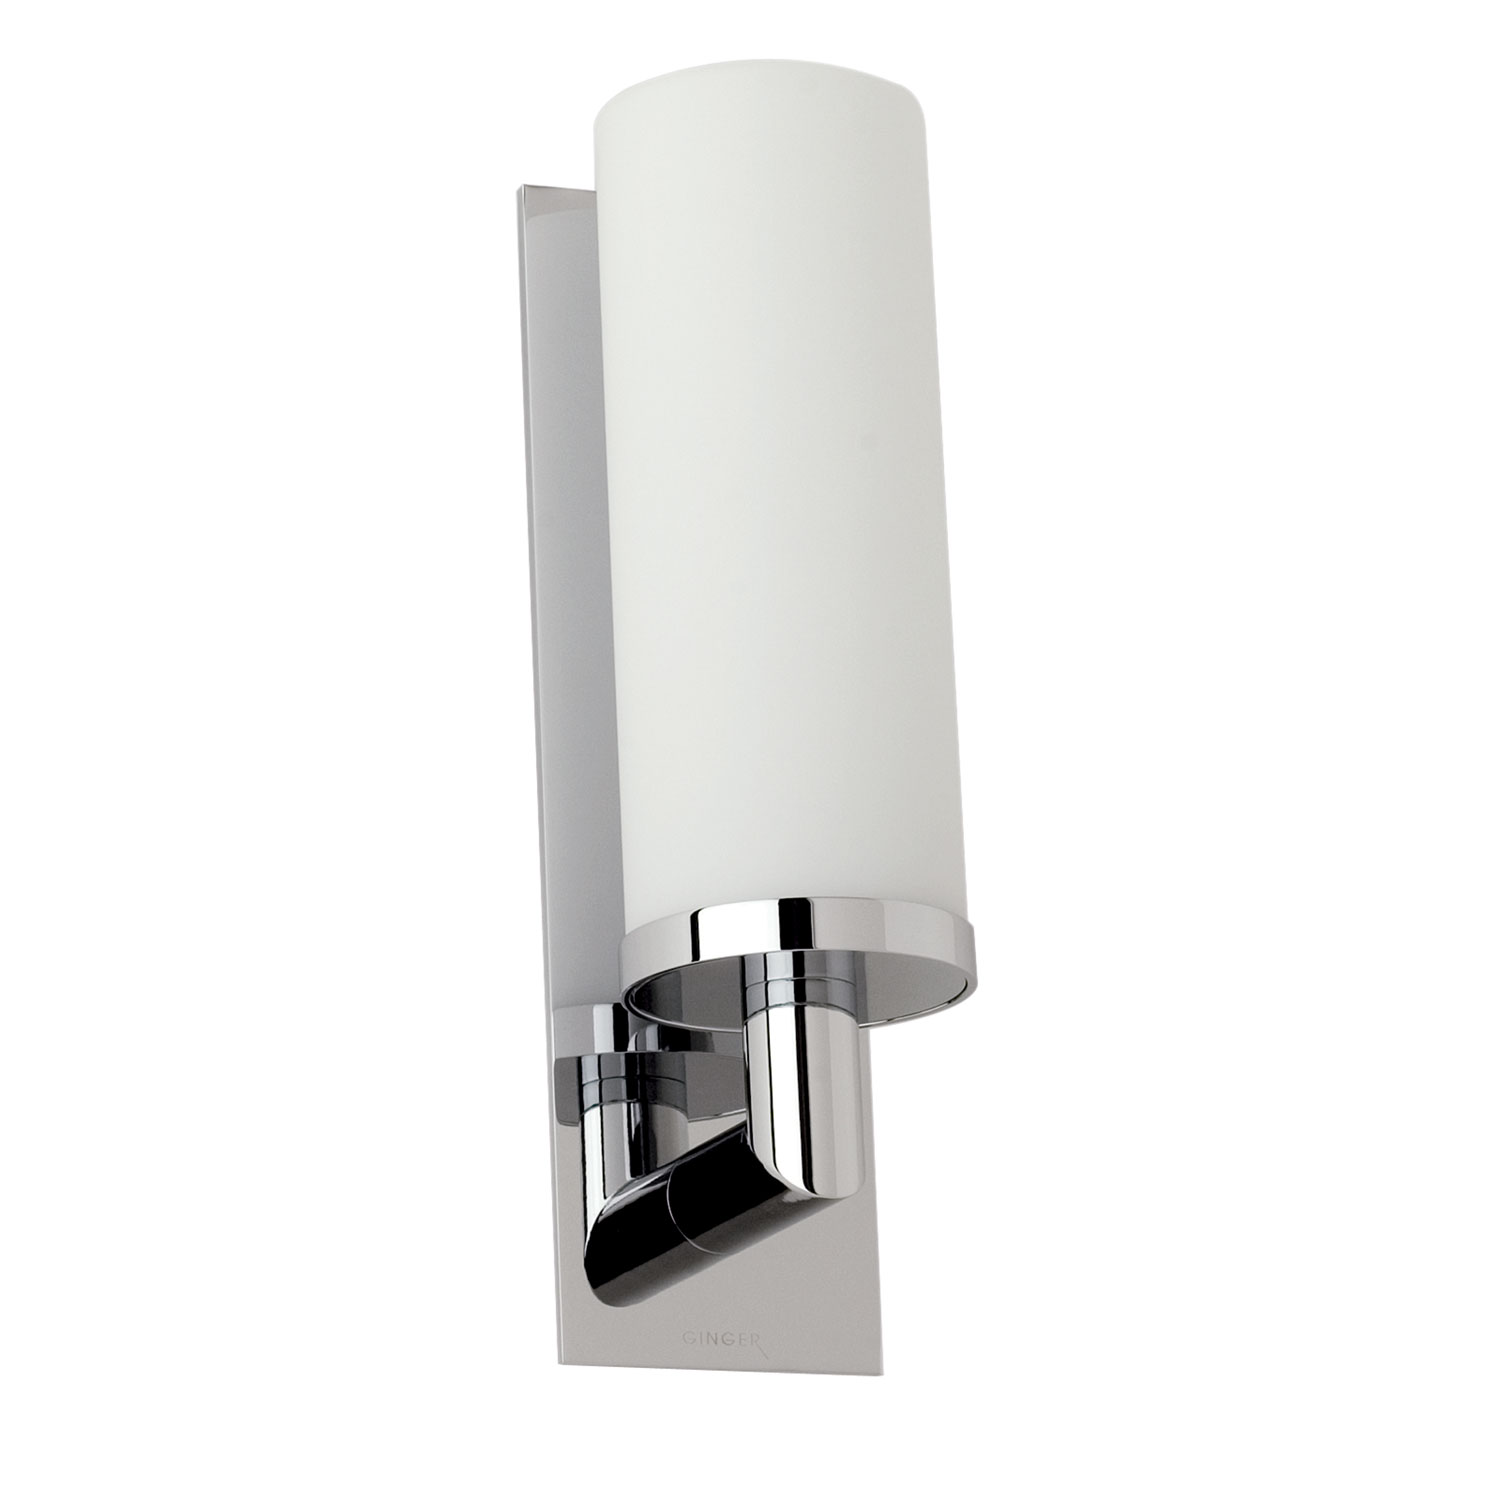 Vanity wall sconce by ginger 2881pc surface vanity wall sconce by ginger 2881pc amipublicfo Images